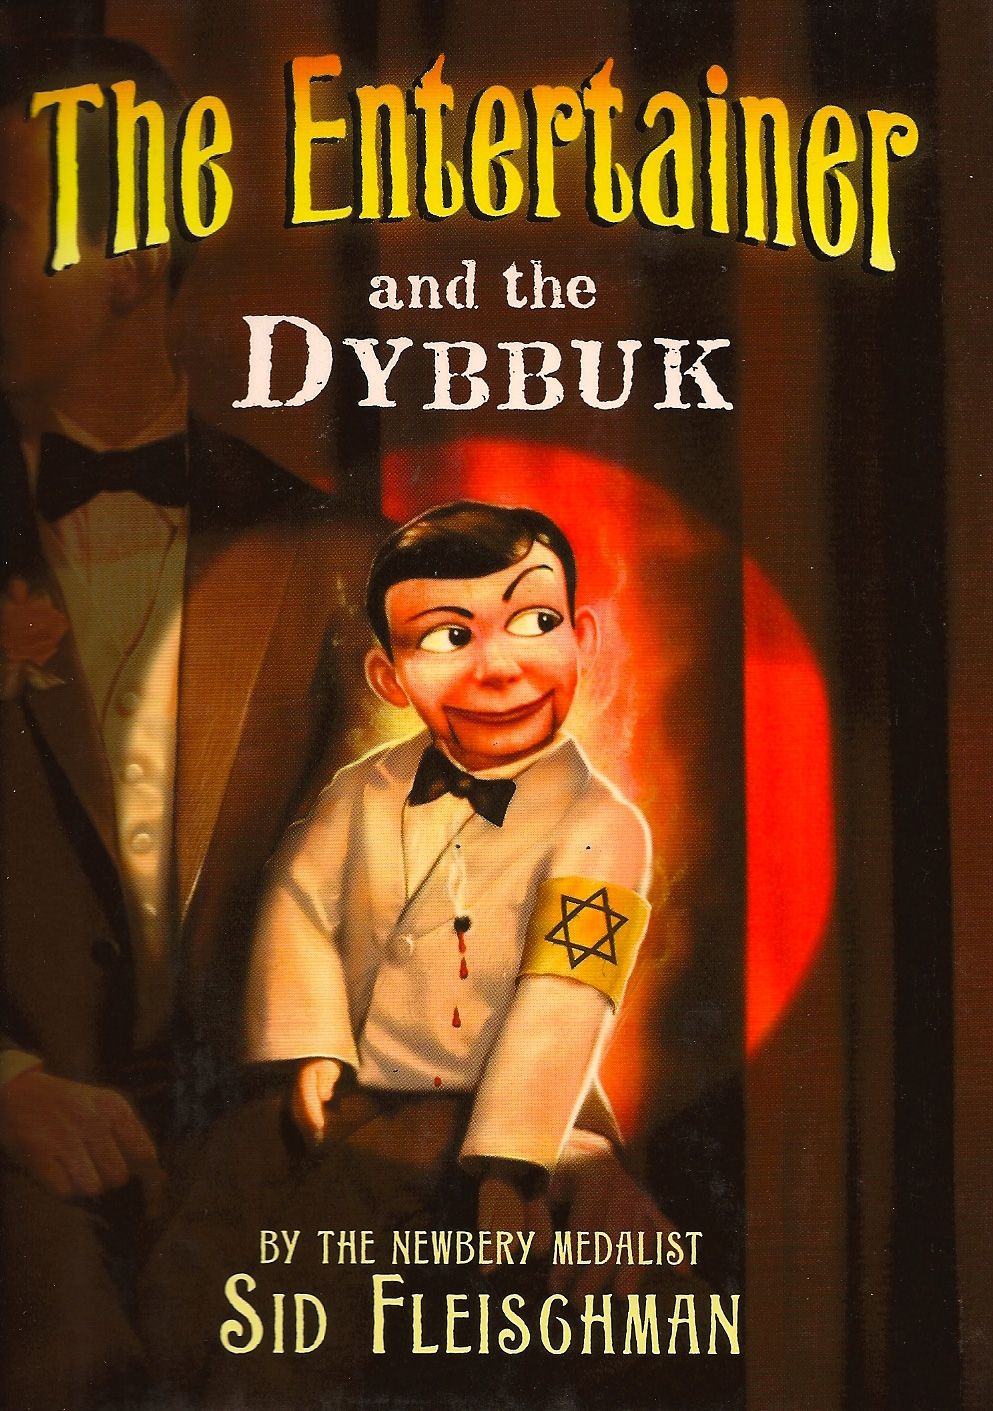 The Entertainer and the Dybbuk - Fleischman's latest novel bristles with bitter humor. A second rate ventriloquist is possessed by a ghost -- a sharp-tongued Jewish dybbuk. The twelve year old boy had been murdered by Nazis during the Second World War. He has returned to seek revenge, and needs the ventriloquist to make his plan work. Three starred reviews: Winner of a Sydney Taylor Award.